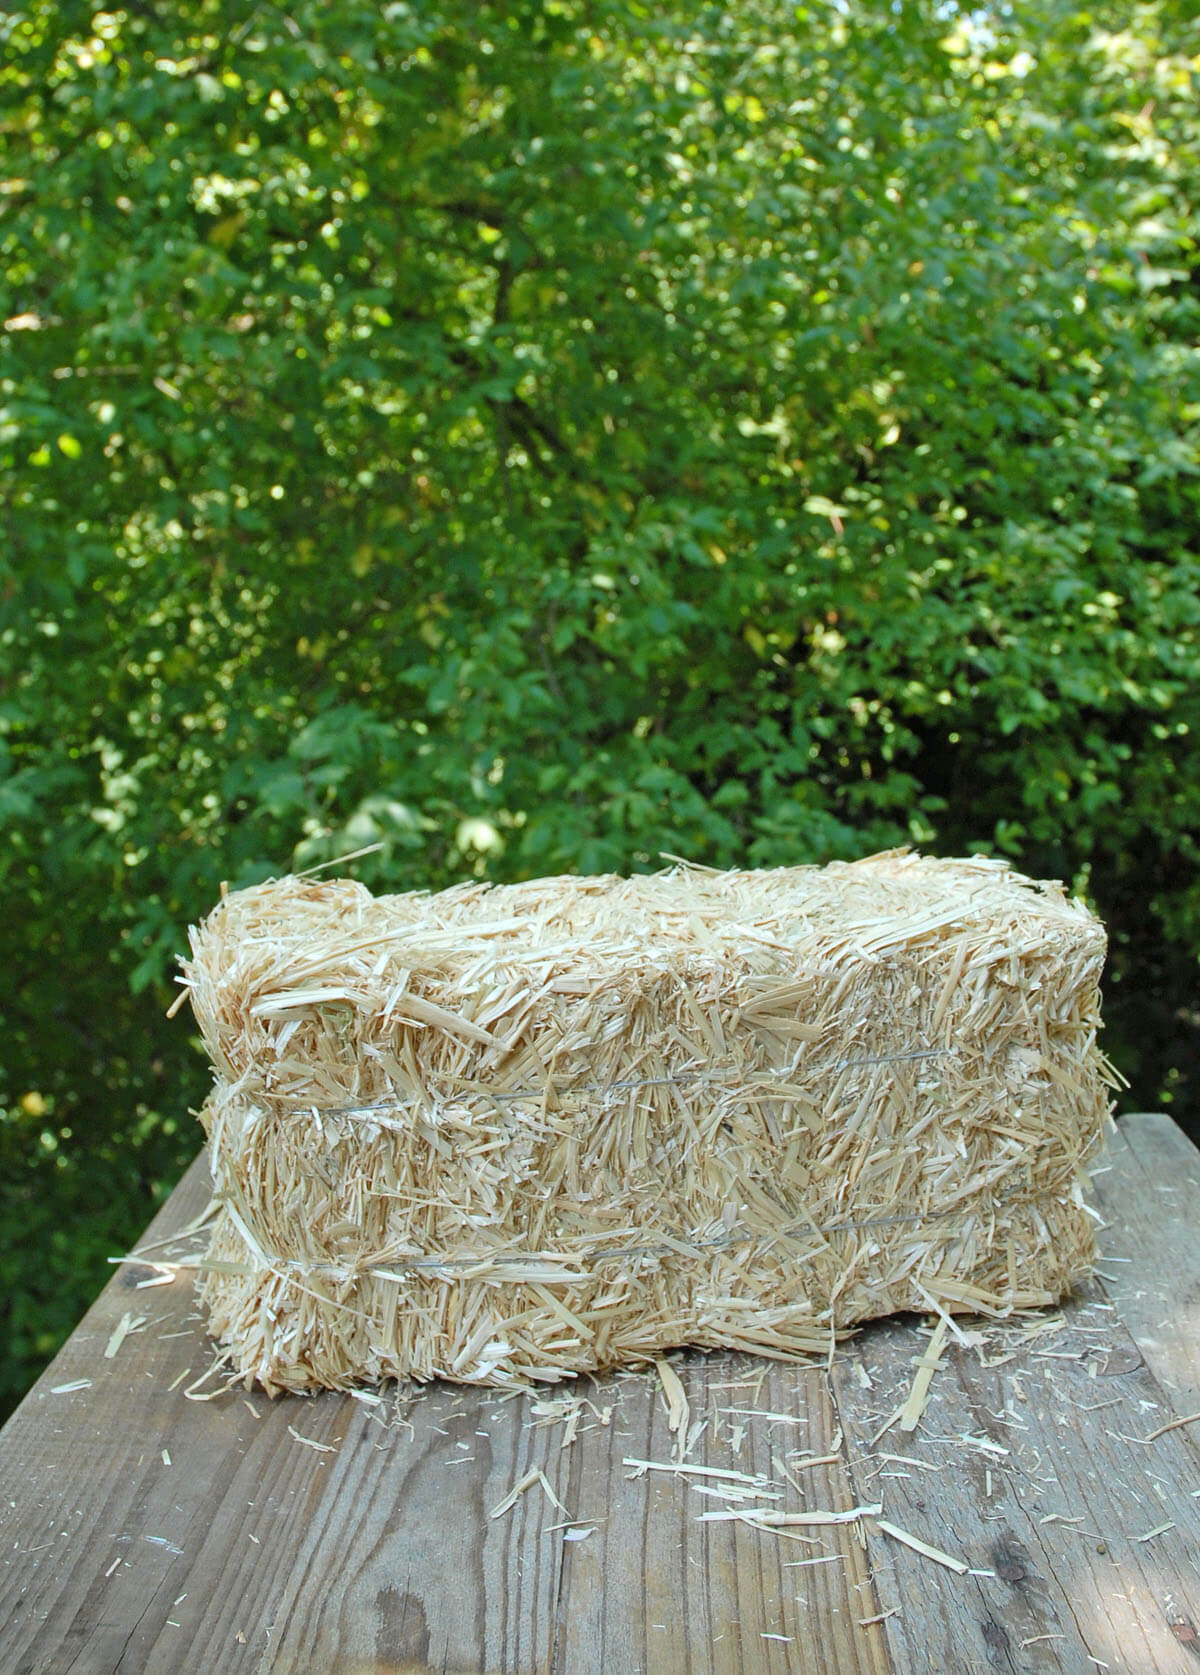 Straw Bale 13in